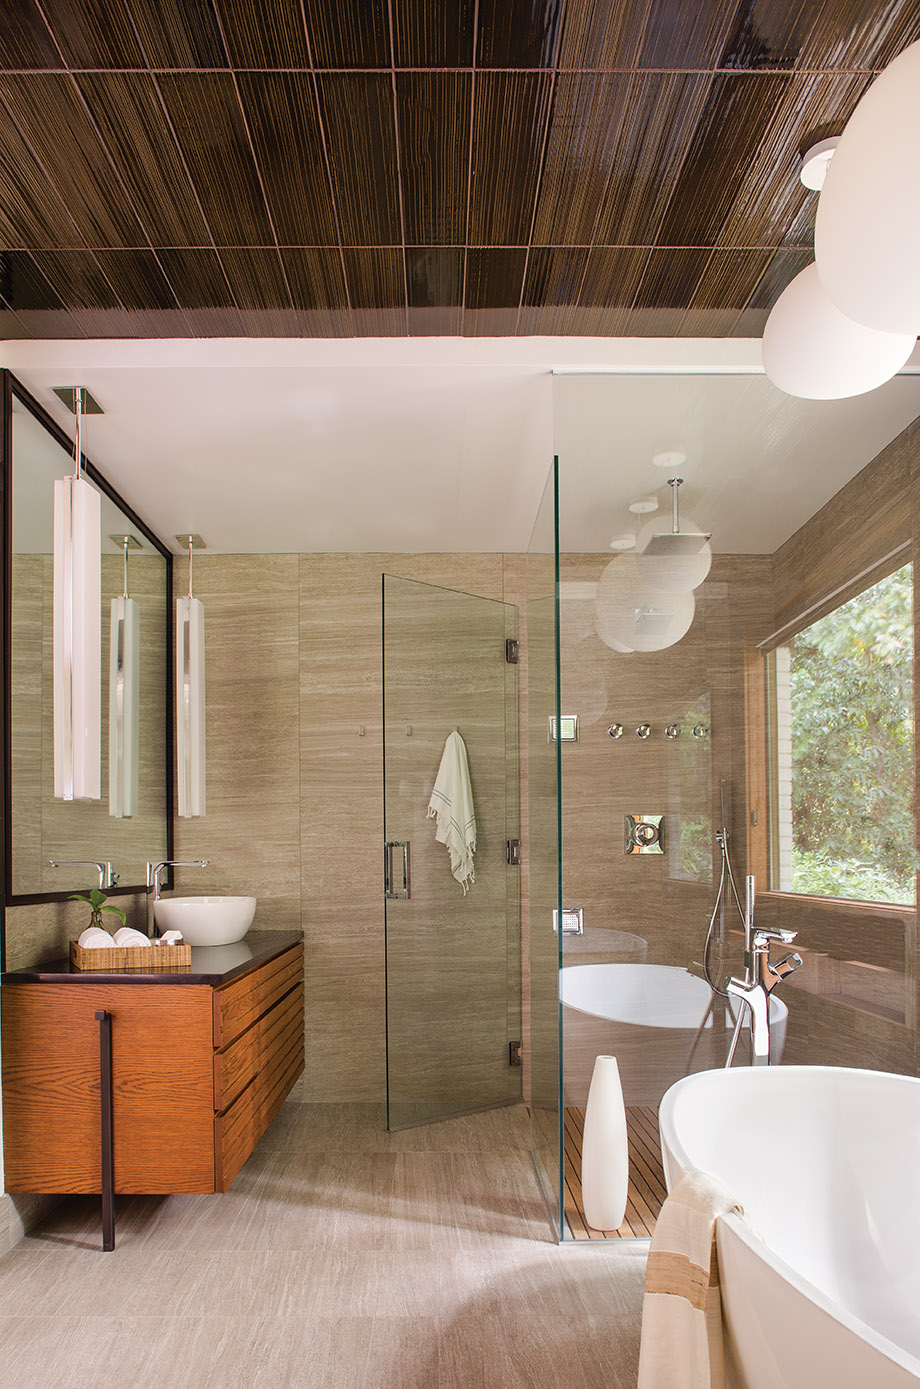 Horizontal lines play out in the planked vanity, shower floor, and textured ceiling.